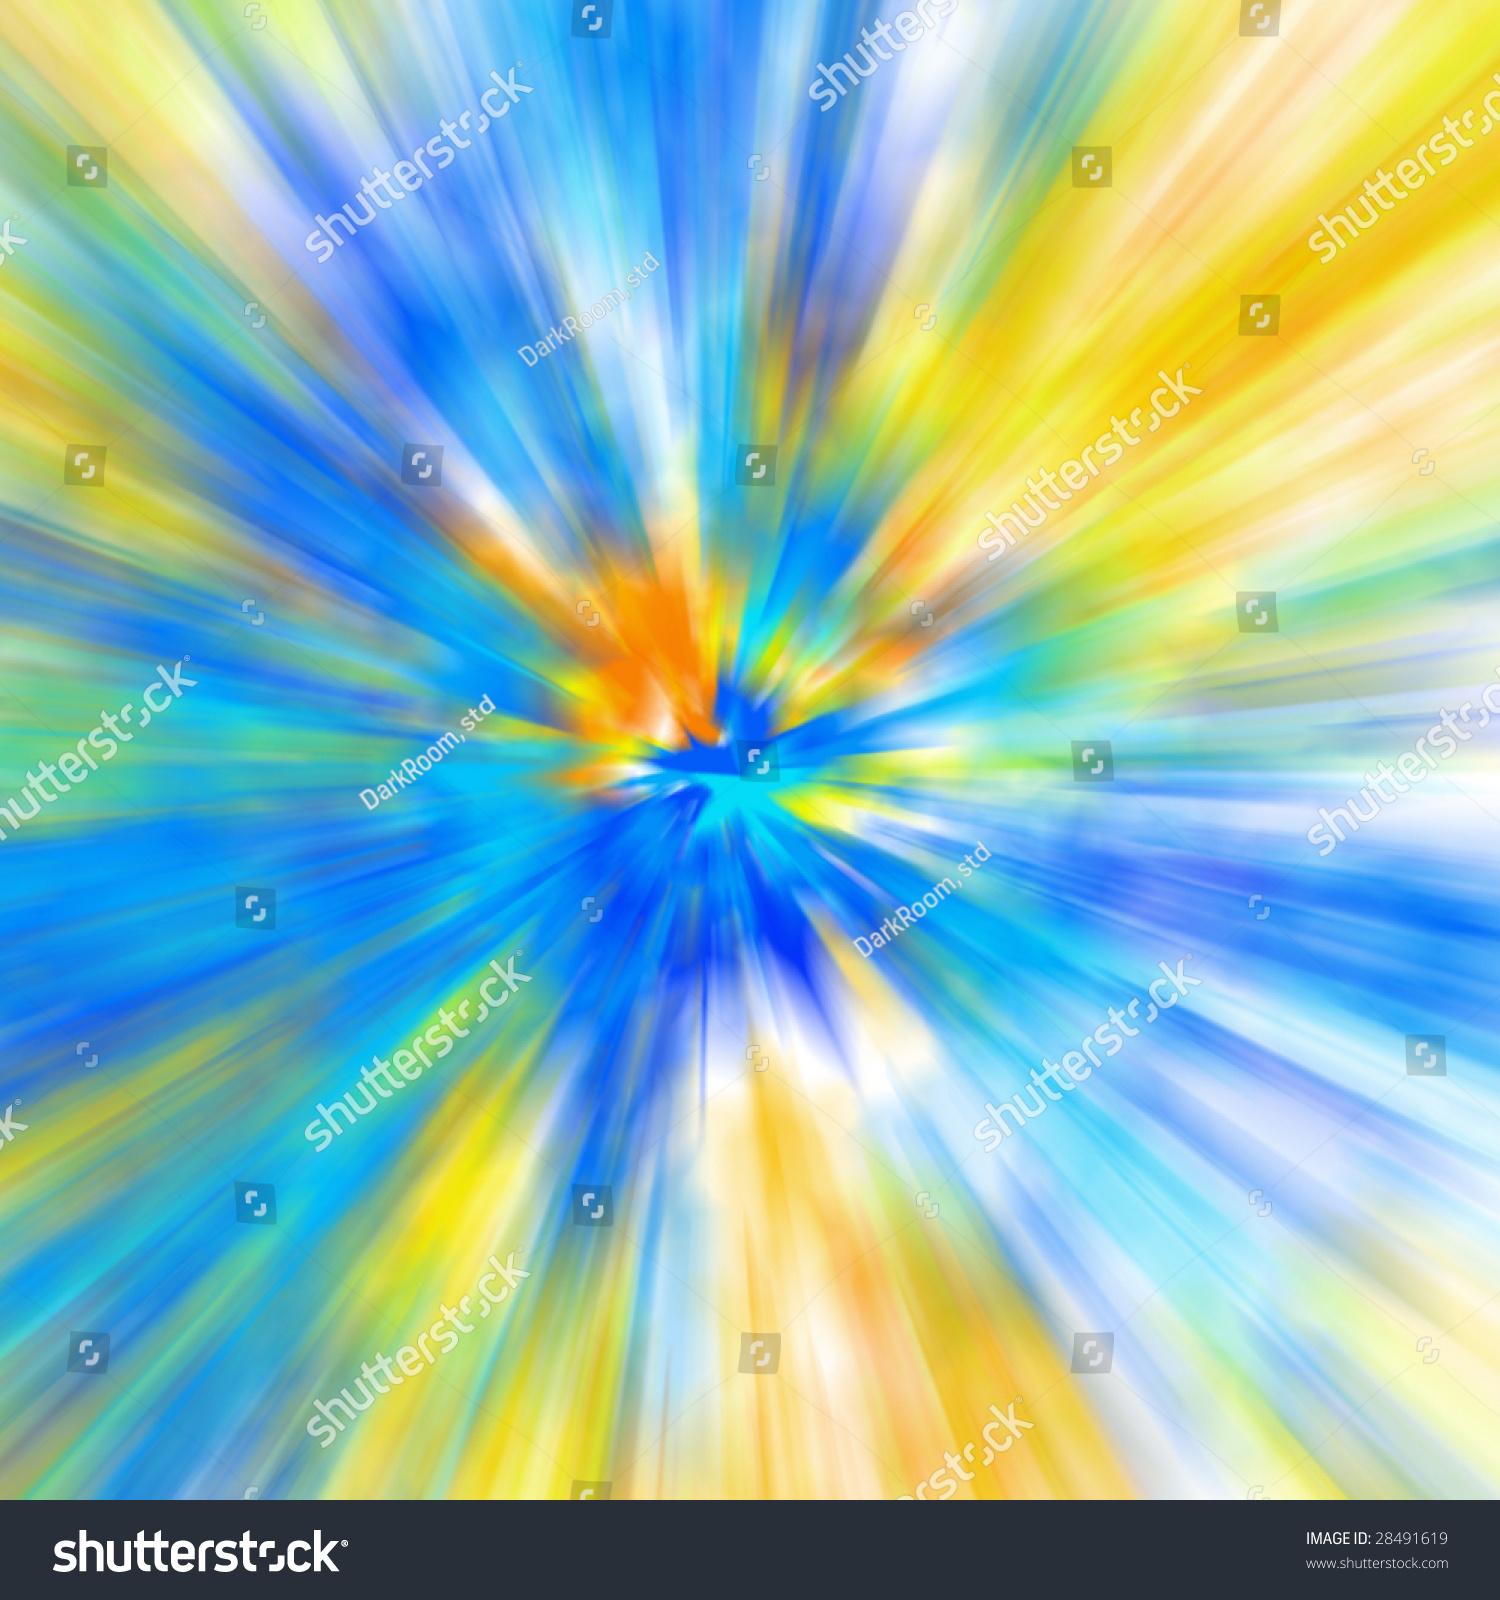 yellow and blue abstract background stock photo 28491619 shutterstock. Black Bedroom Furniture Sets. Home Design Ideas